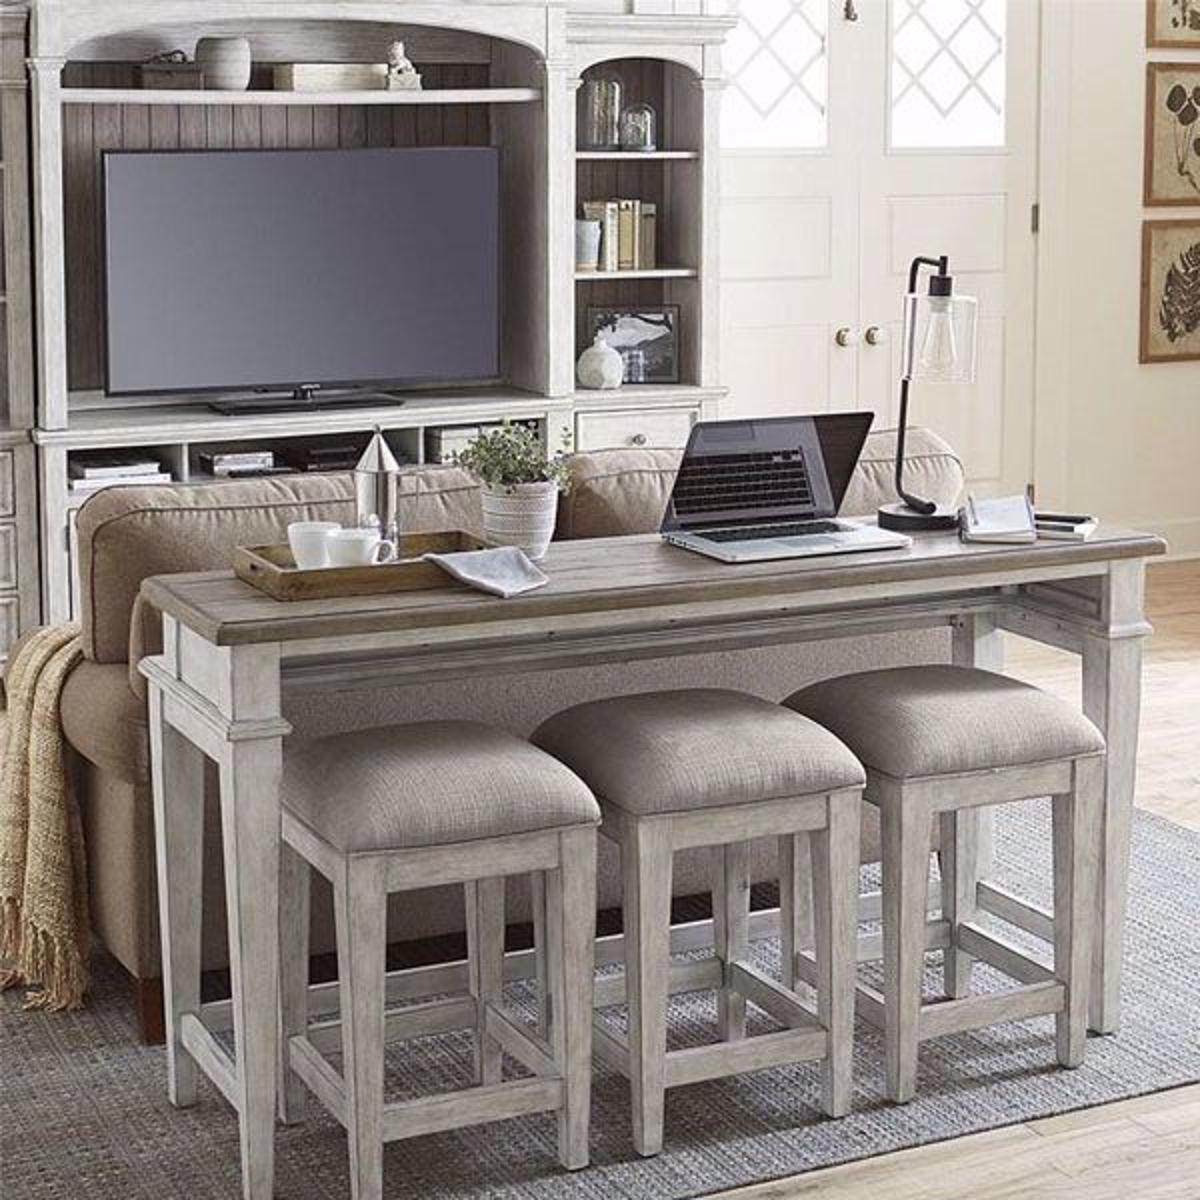 Picture of Piazza 4 Piece Console and Stool Set